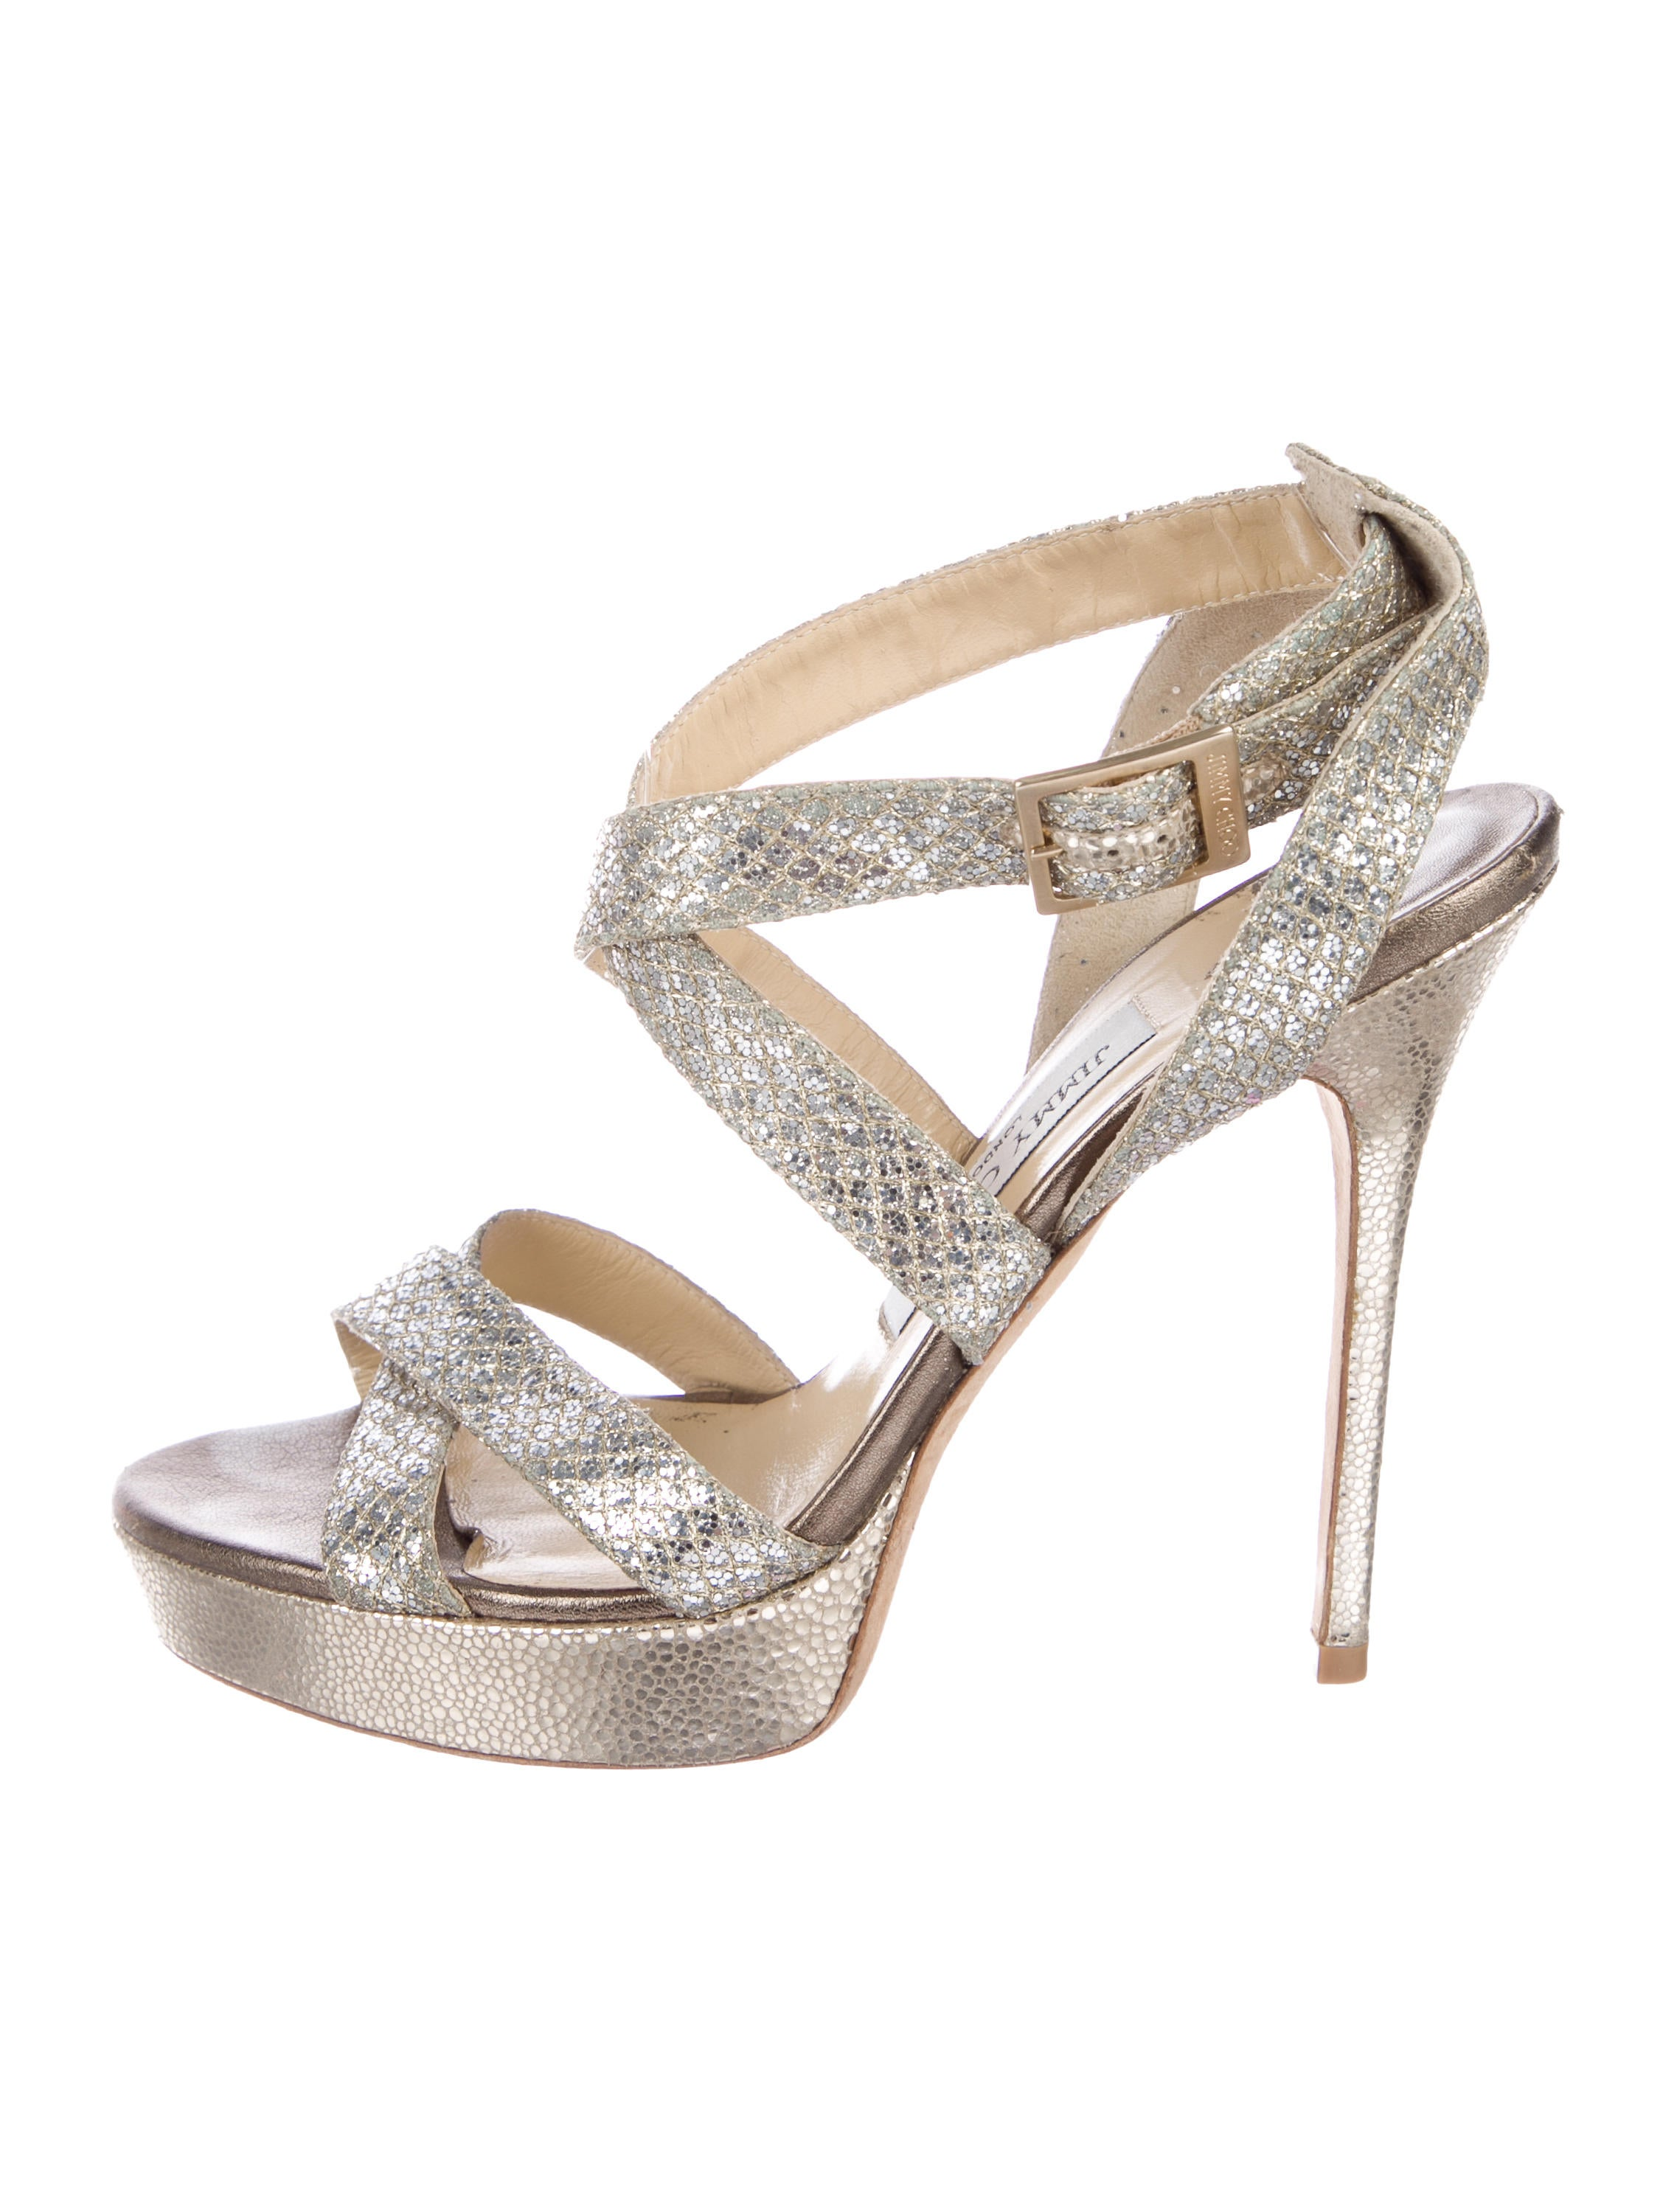 for sale cheap price from china buy cheap with mastercard Jimmy Choo Glitter Crossover Sandals discount deals outlet enjoy nT6P2tF